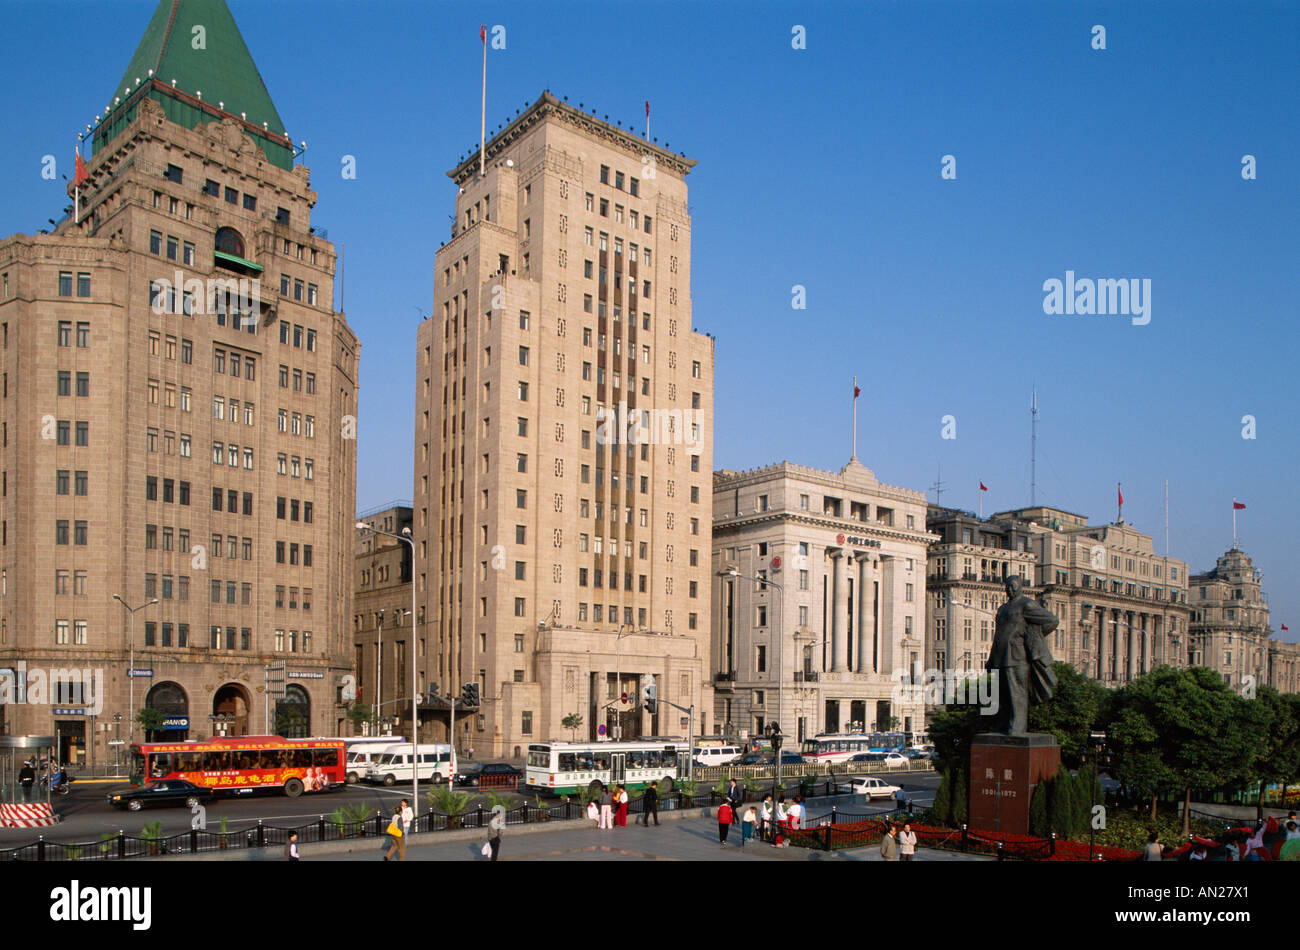 The Bund / Colonial Buildings / Historical 1920's Architecture, Shanghai, China - Stock Image